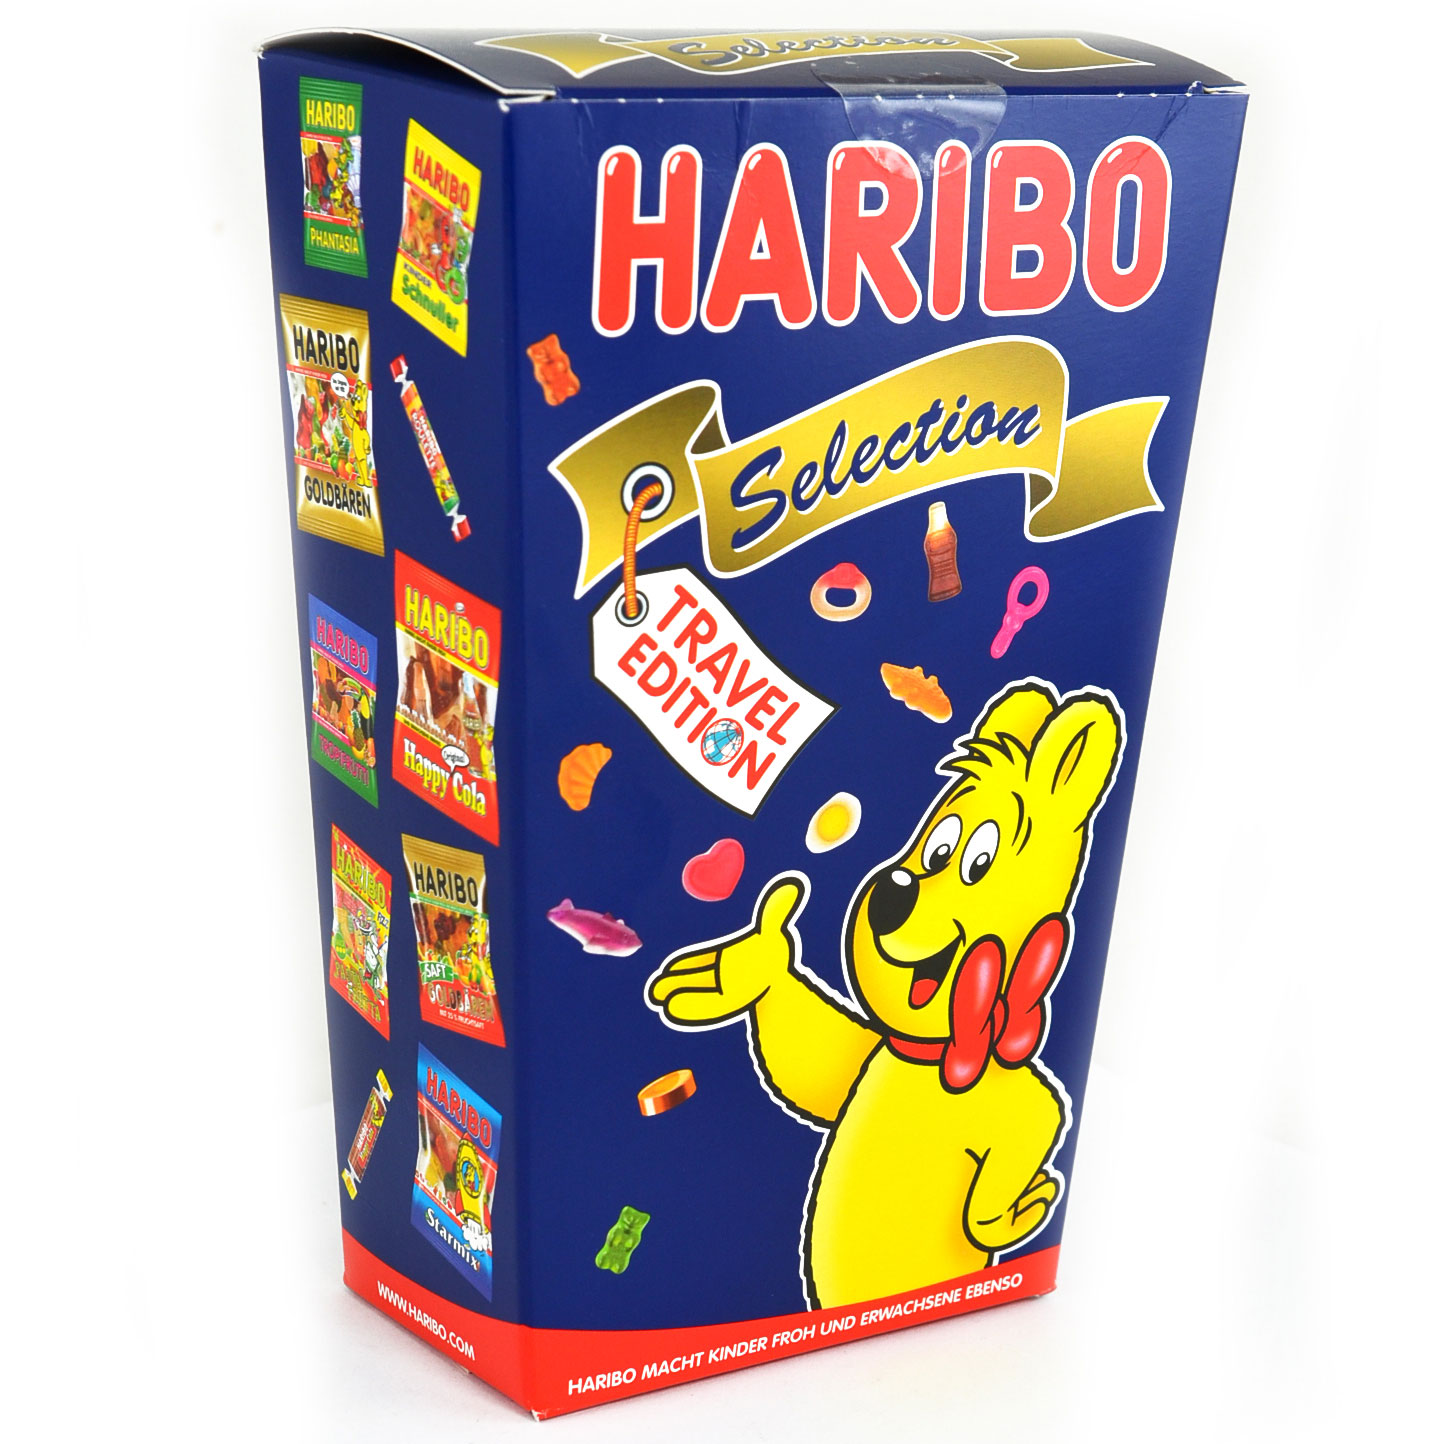 haribo selection travel edition 500g online kaufen im world of sweets shop. Black Bedroom Furniture Sets. Home Design Ideas